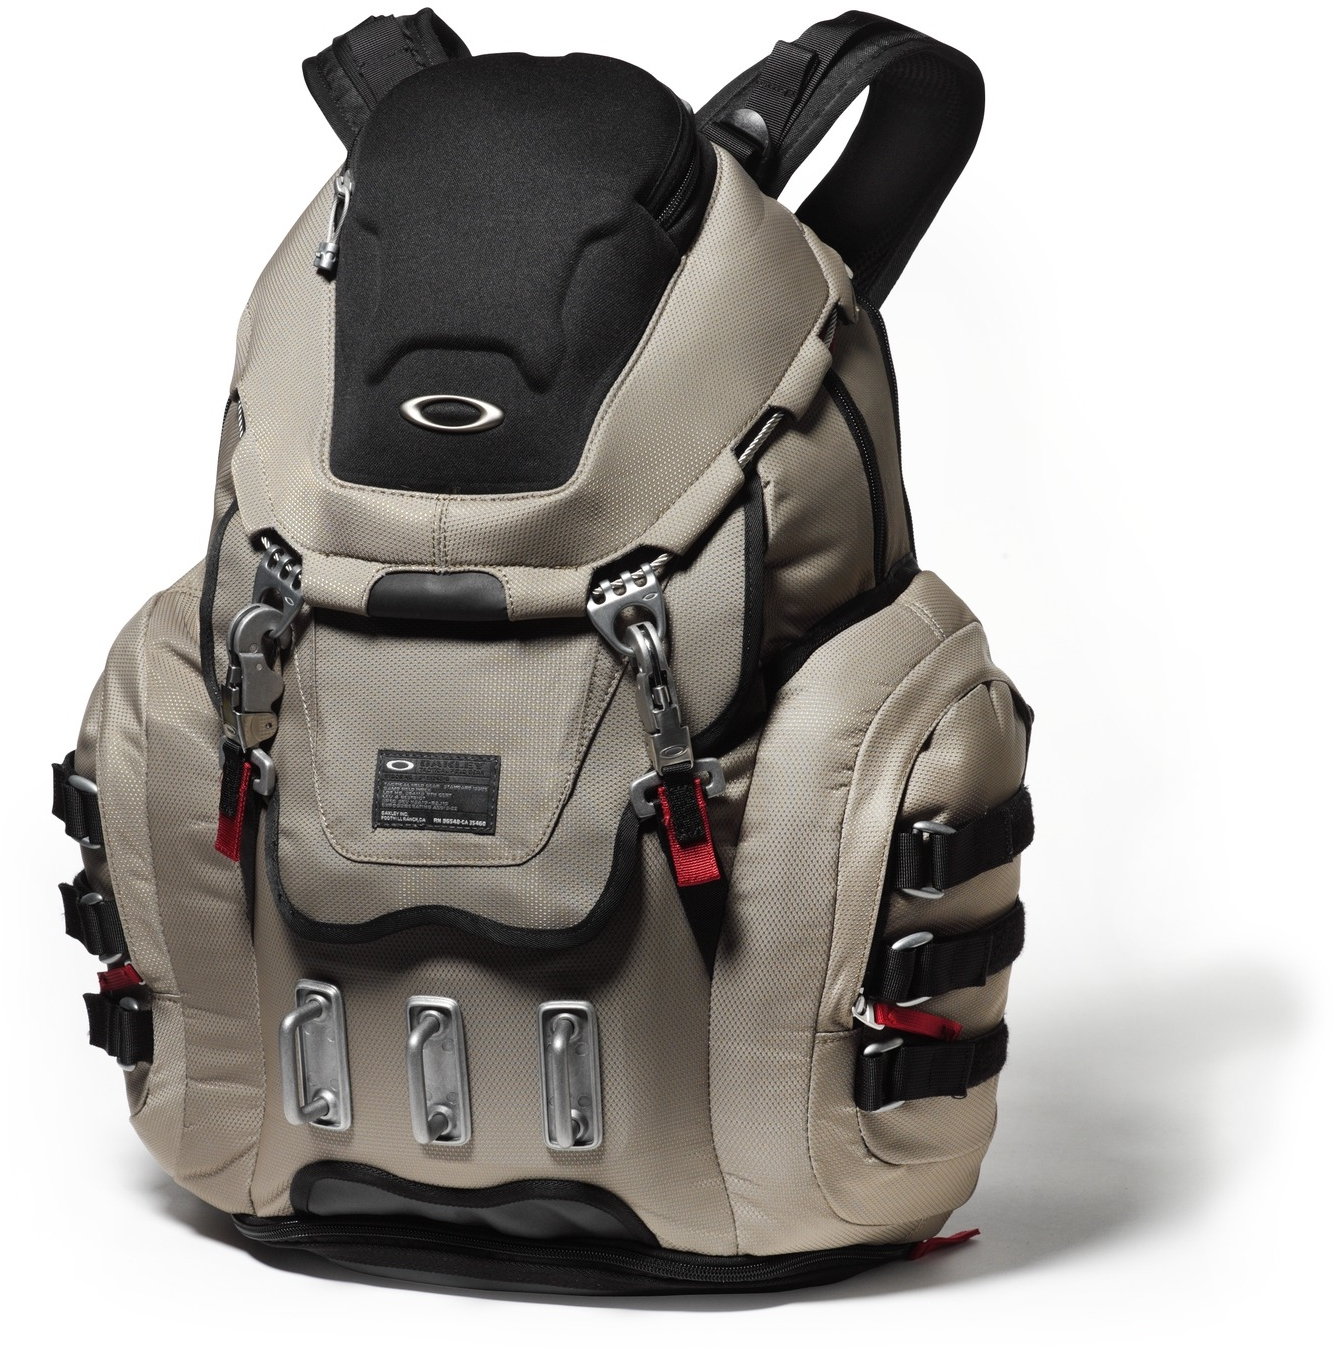 Waterproof Backpack Reviews e4xh2Oxw